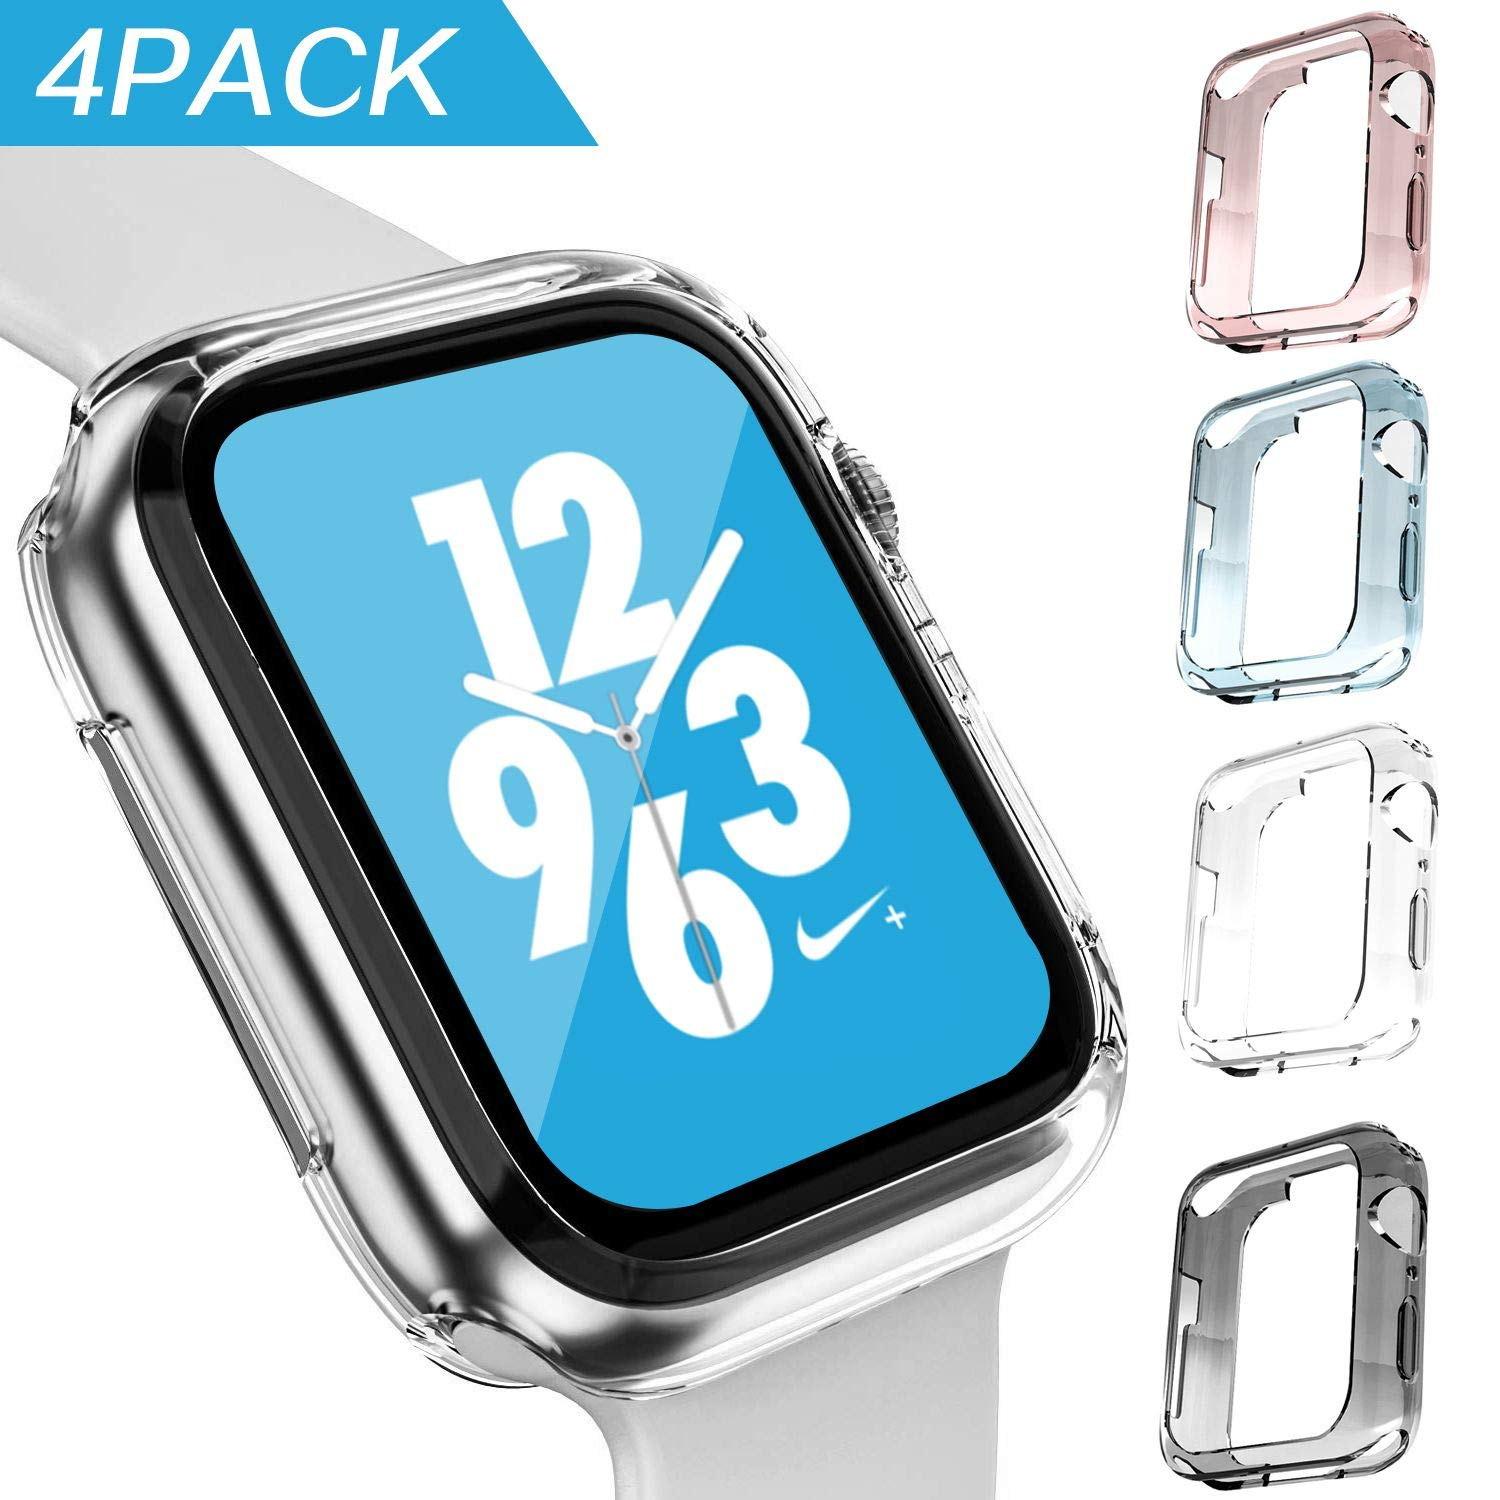 GONJOY Apple Watch Series 4 44mm Case Protector, [4 - Pack Colorful] Soft TPU Protective Cover Bumper Case Compatible with Apple iWatch Series 4 44mm & Series 3 Series 2 42mm by GONJOY